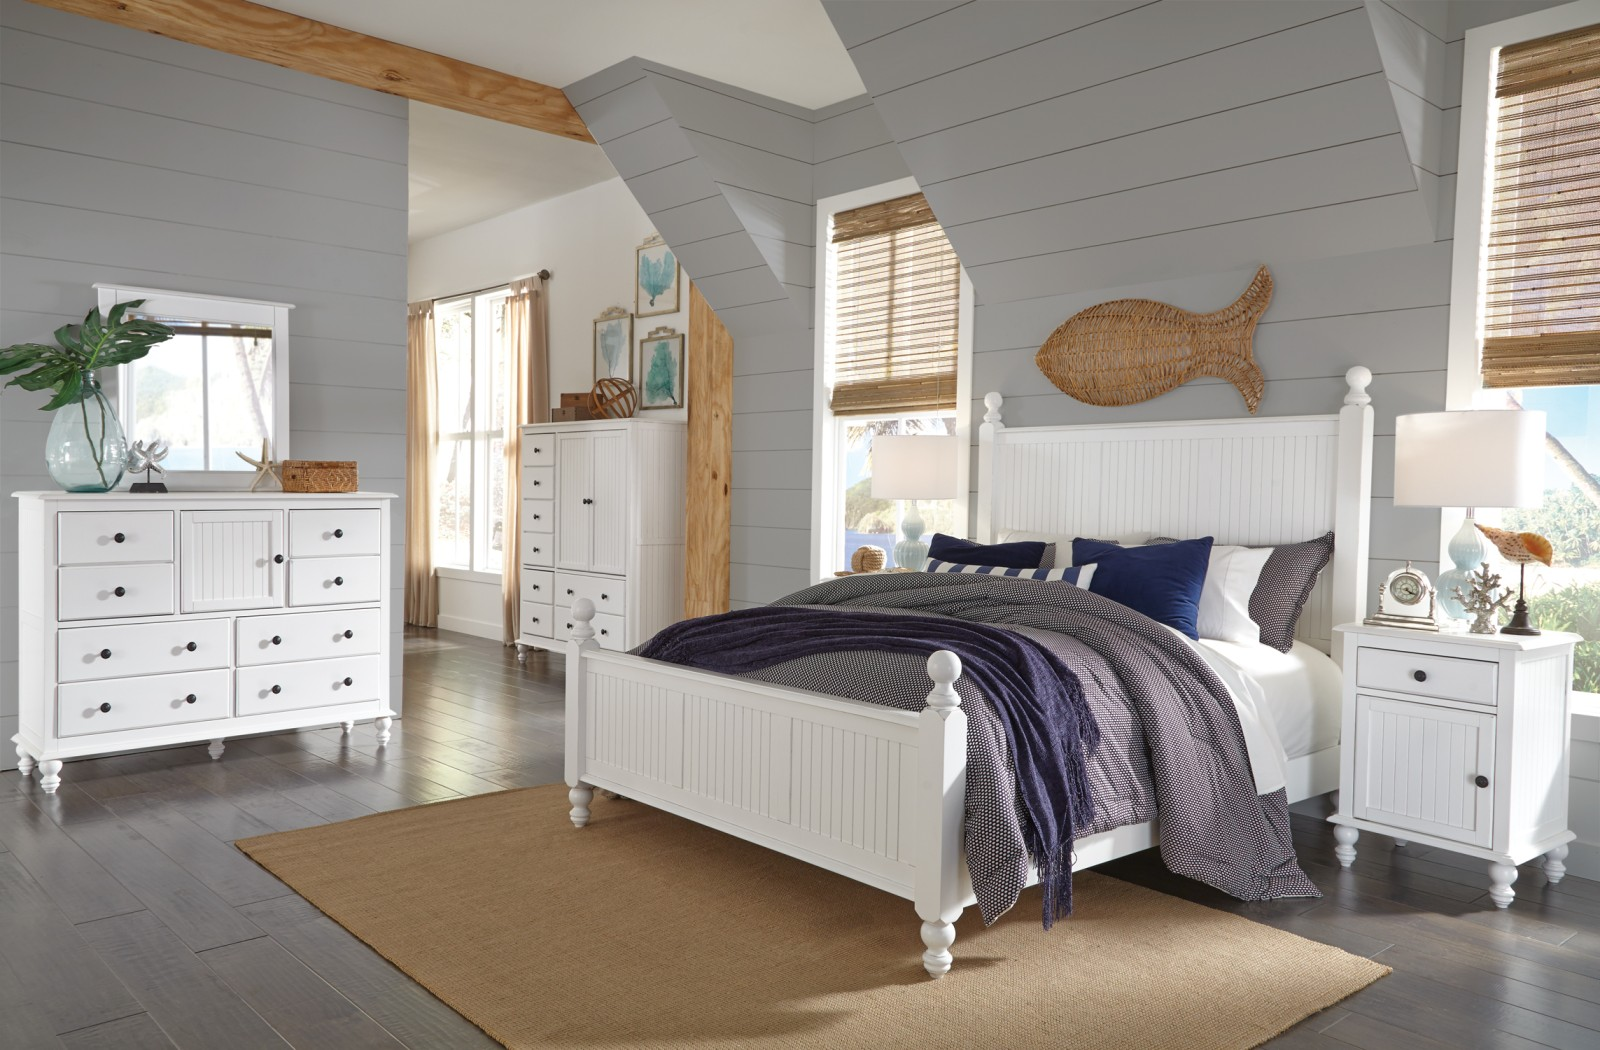 Modern Decorations For Bedroom 5 Quick Tips For Designing A Modern Beach Themed Bedroom